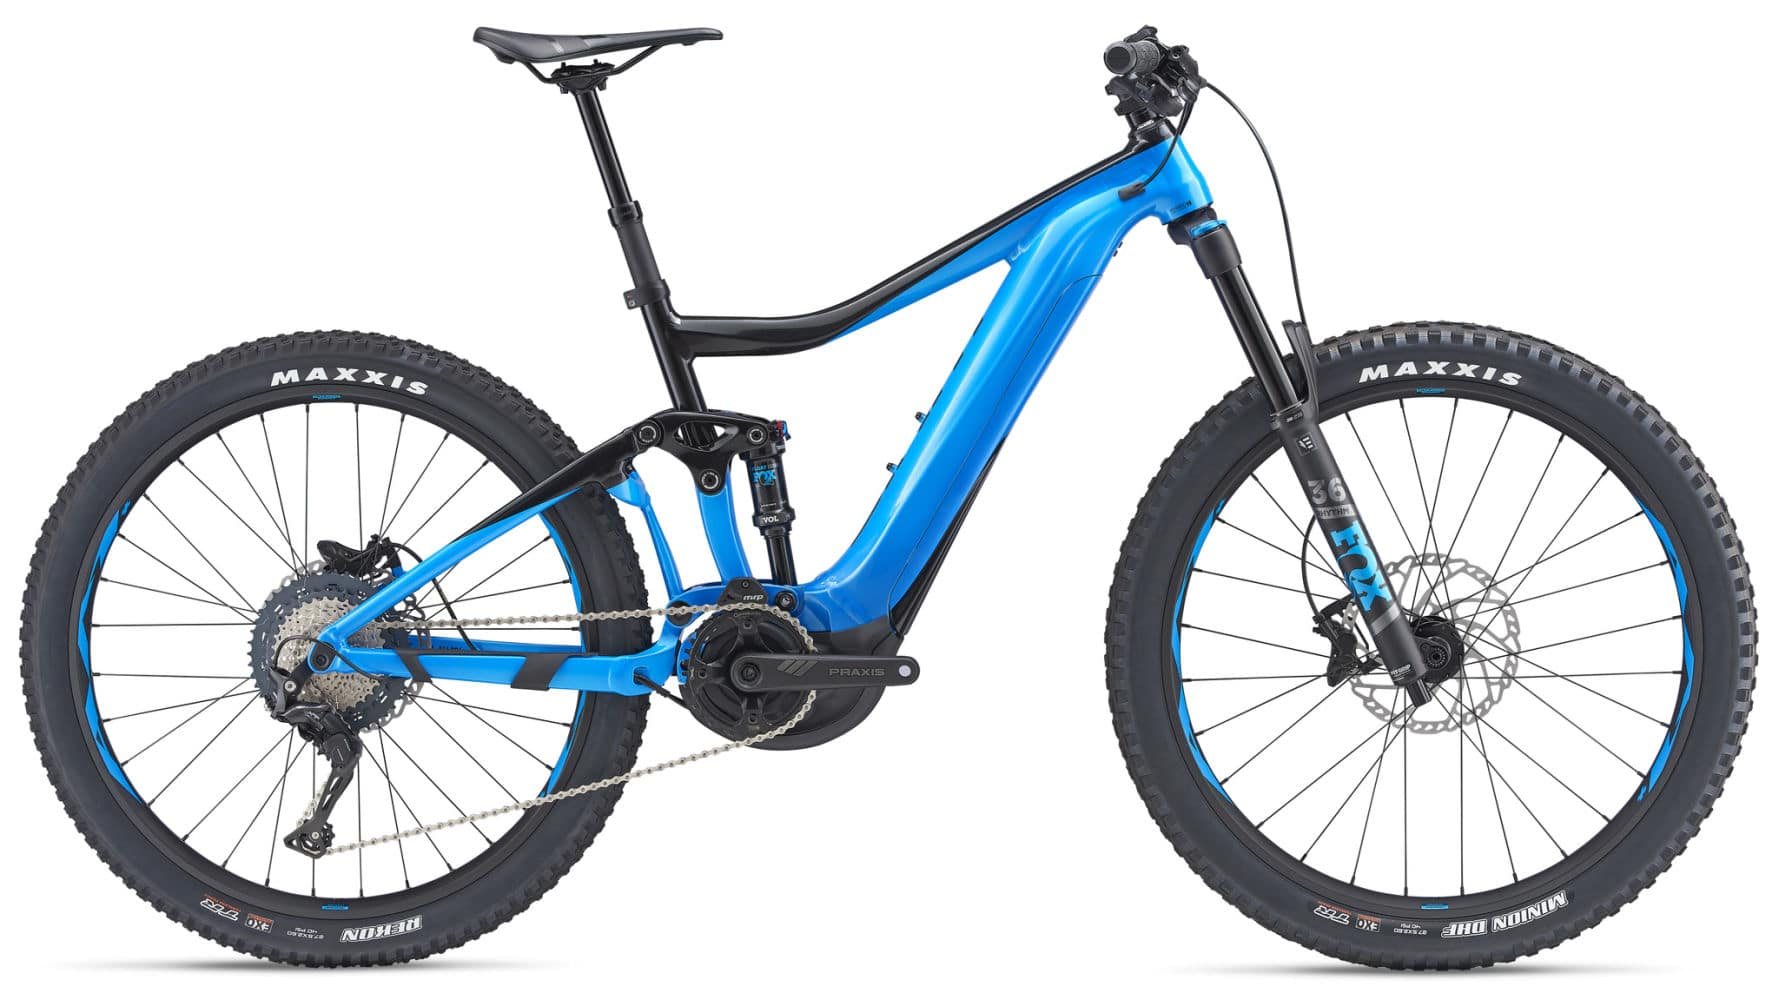 E-BIKE FULLY GIANT SYNCDRIVE Pro FULL -E+ 0 SX, 500 wh battery